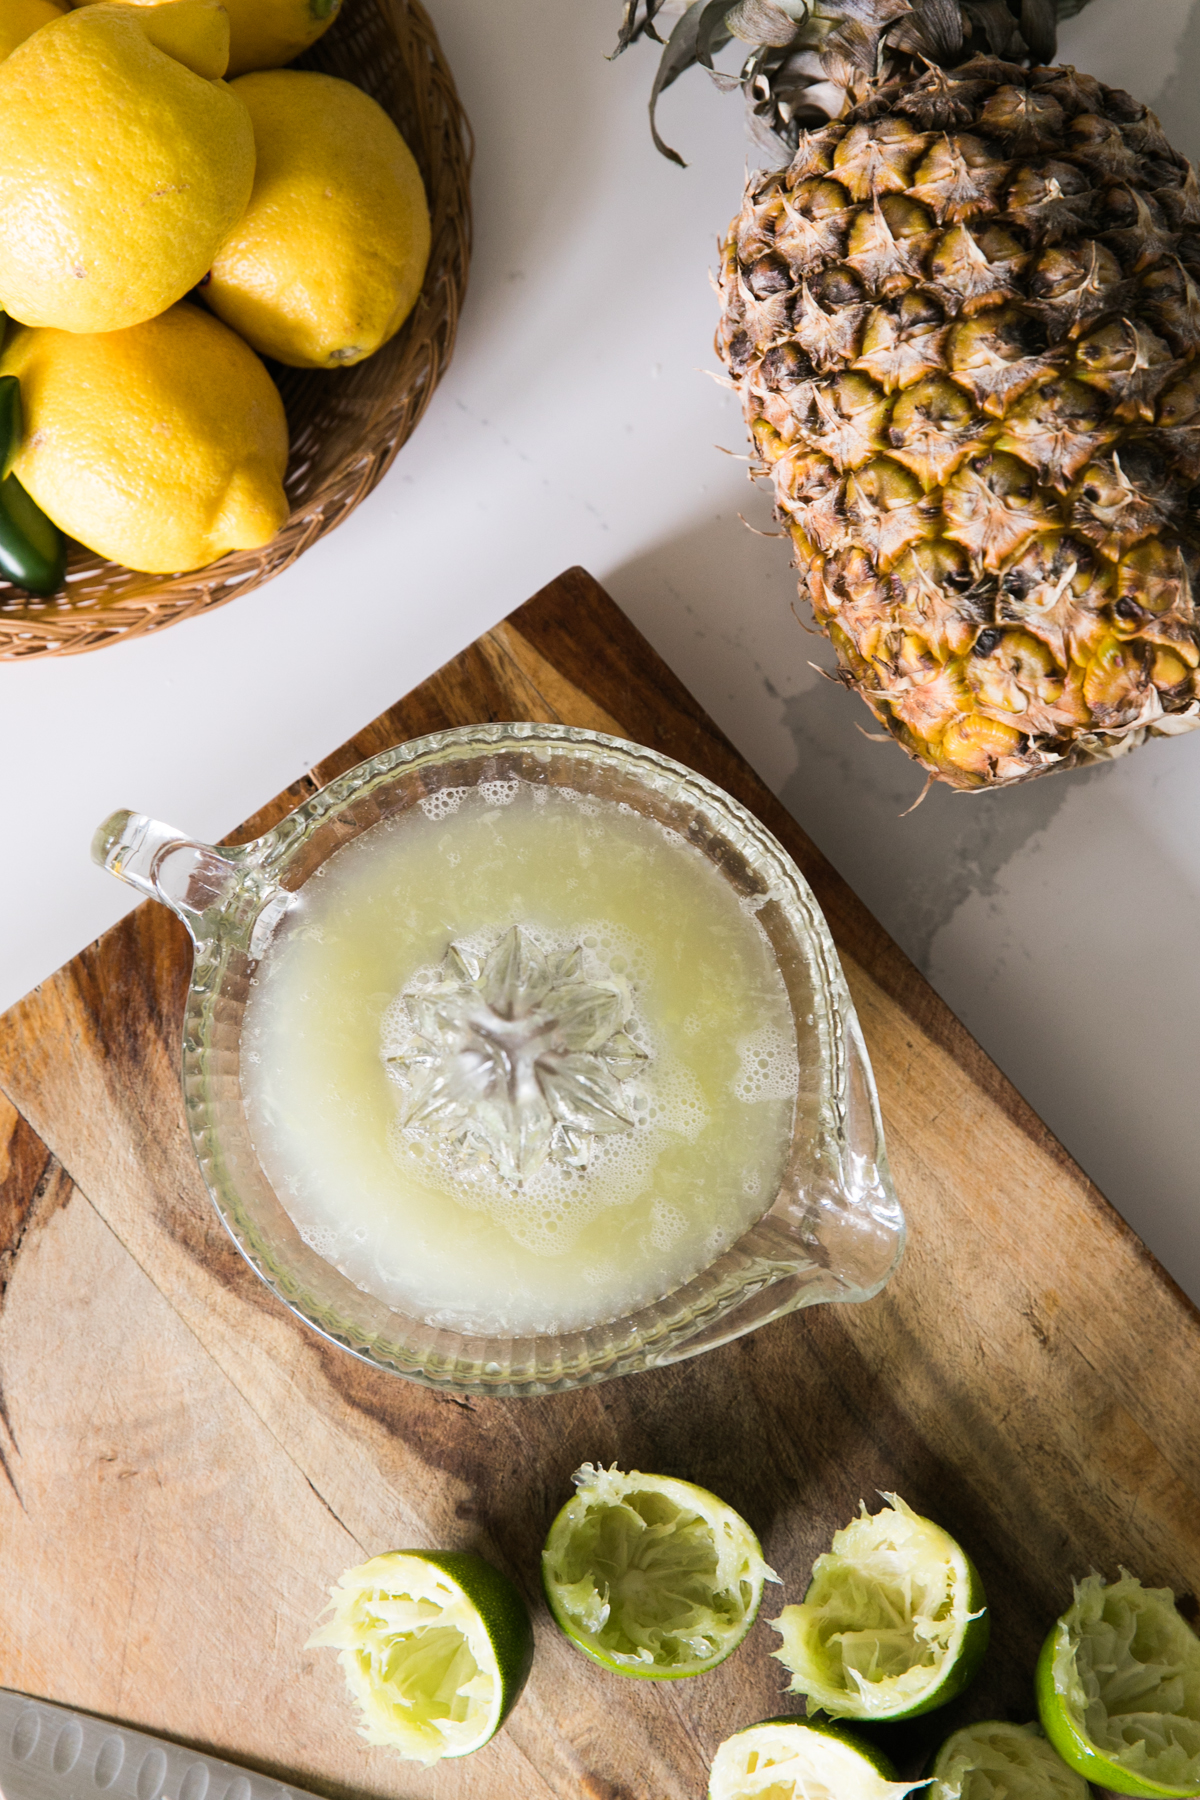 Grilled Pineapple and Jalapeño Margarita | The Spicy Señorita | Summer Cocktails | Tequila Cocktails | Jessica Brigham | Magazine Ready for Life